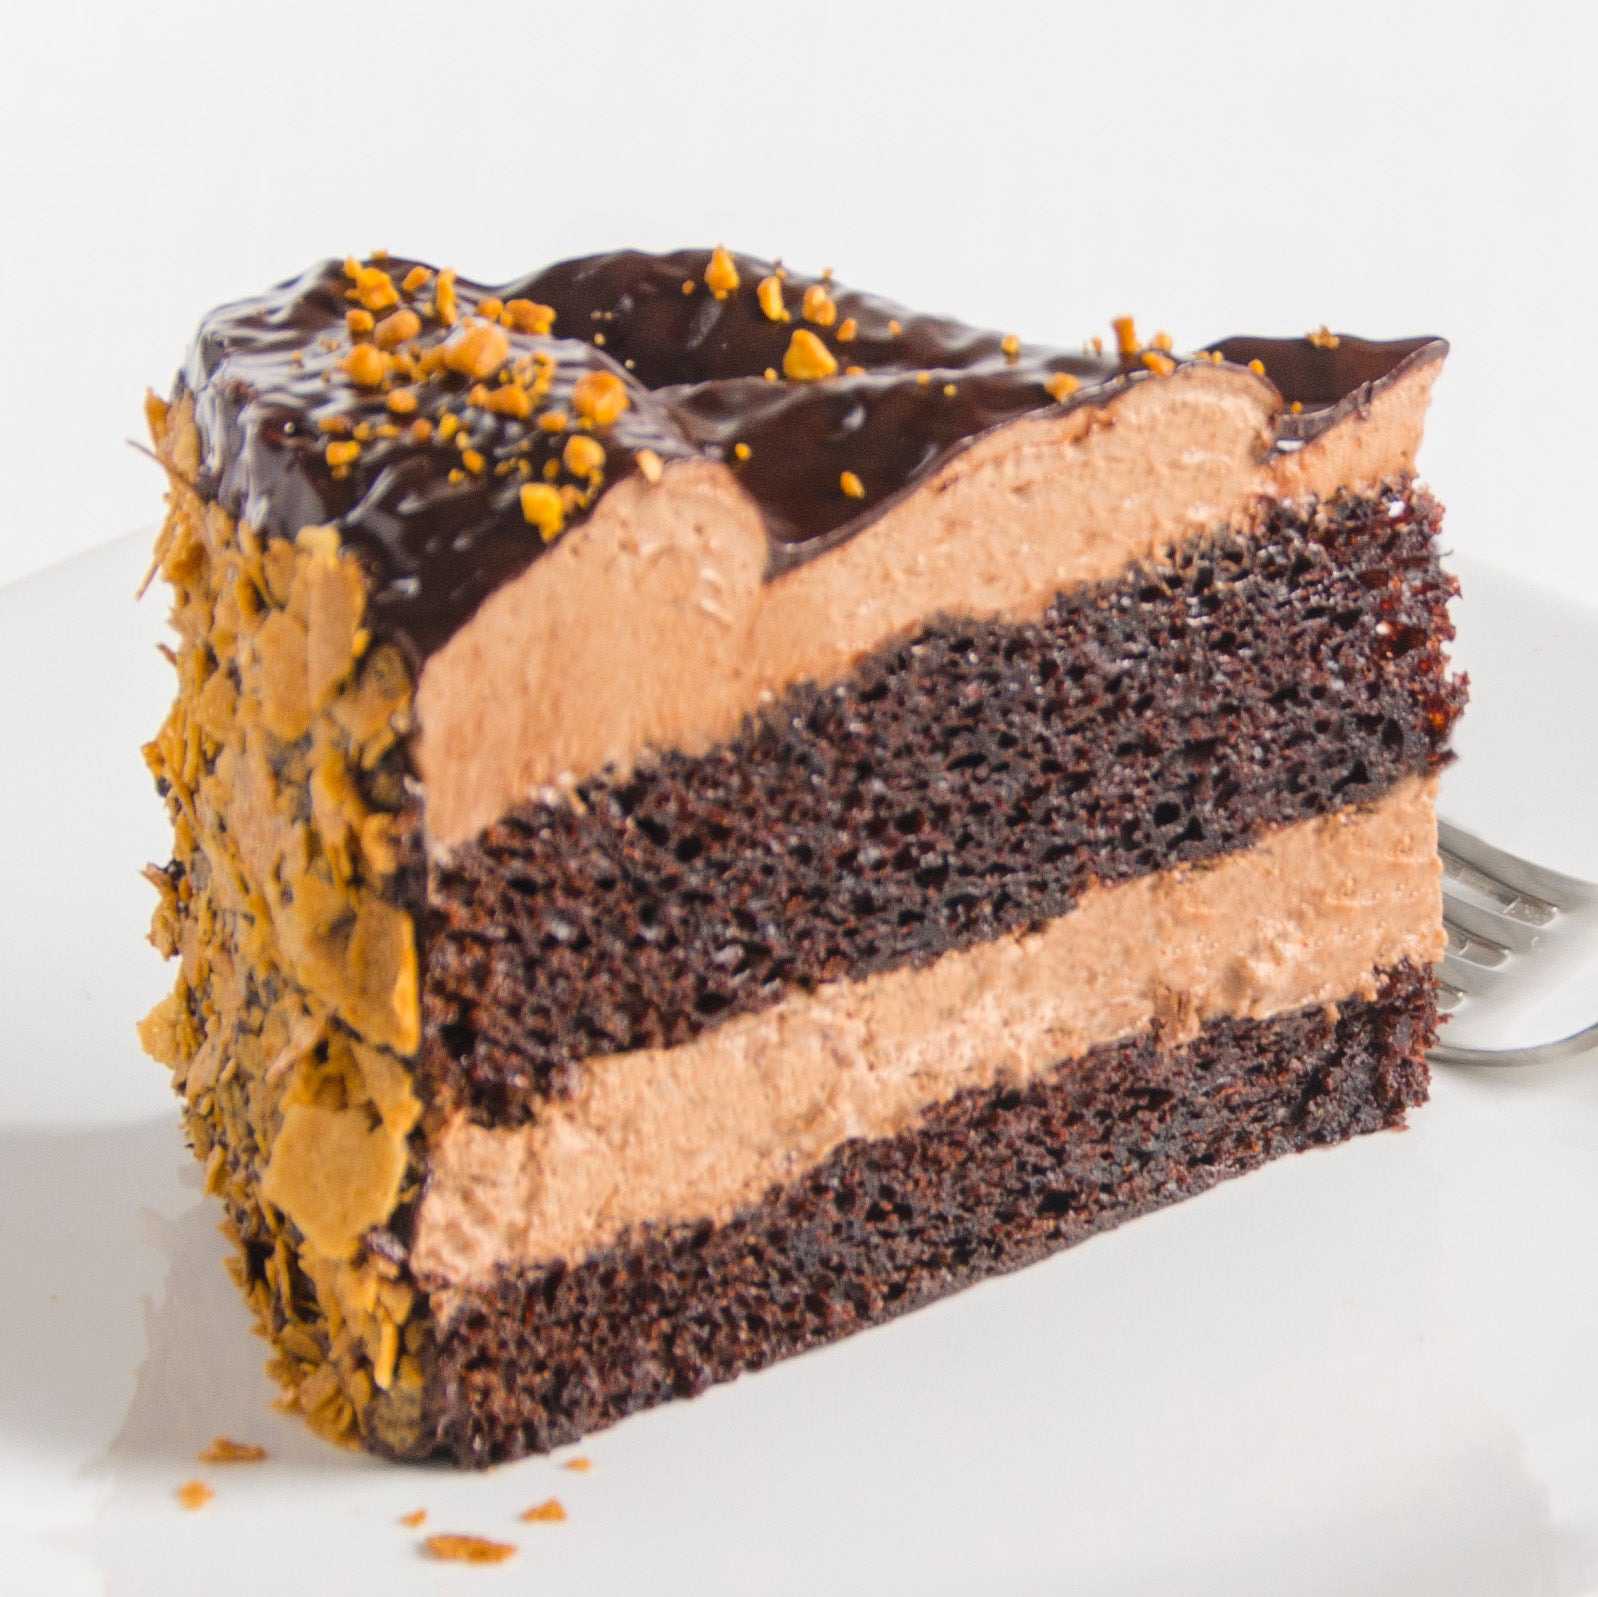 Chocolate Hazelnut Cake